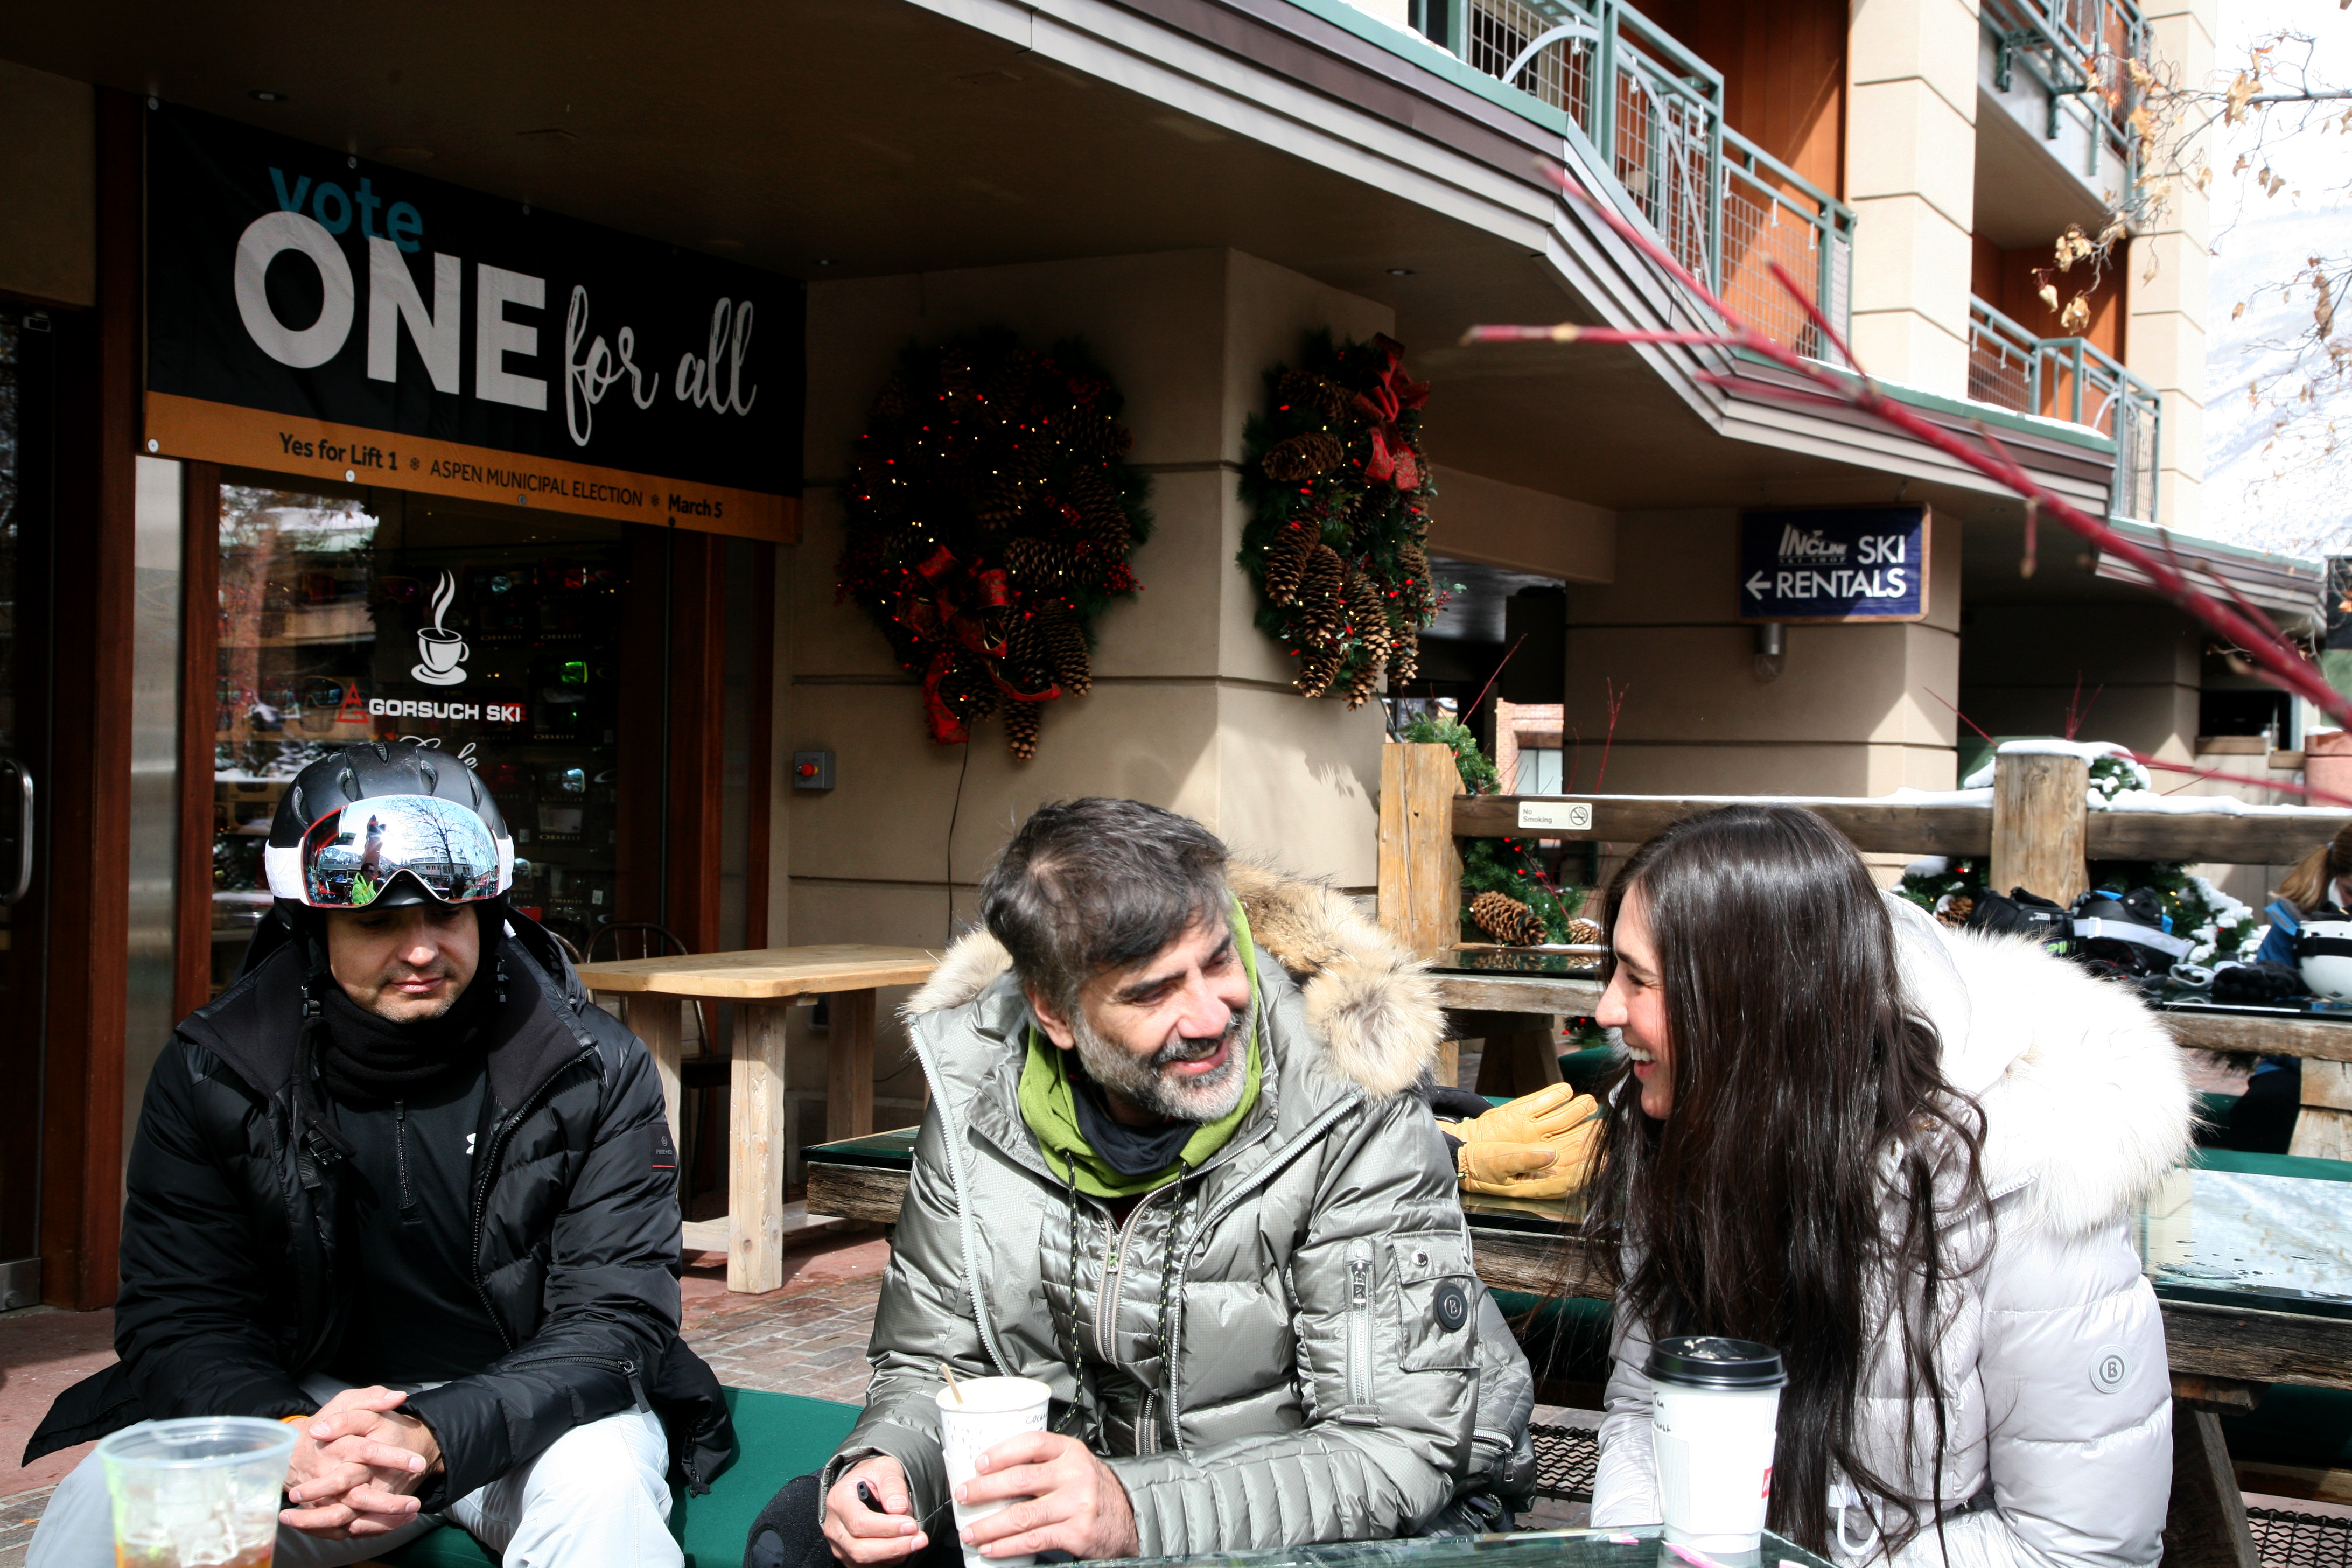 <p>Signs in support of Lift One are visible all across Aspen, though the project is controversial. From left, Mexican visitors Rafael Orozco, Alejandro Fernandez and Karla Laveaga drink coffee at the base of the mountain.</p>